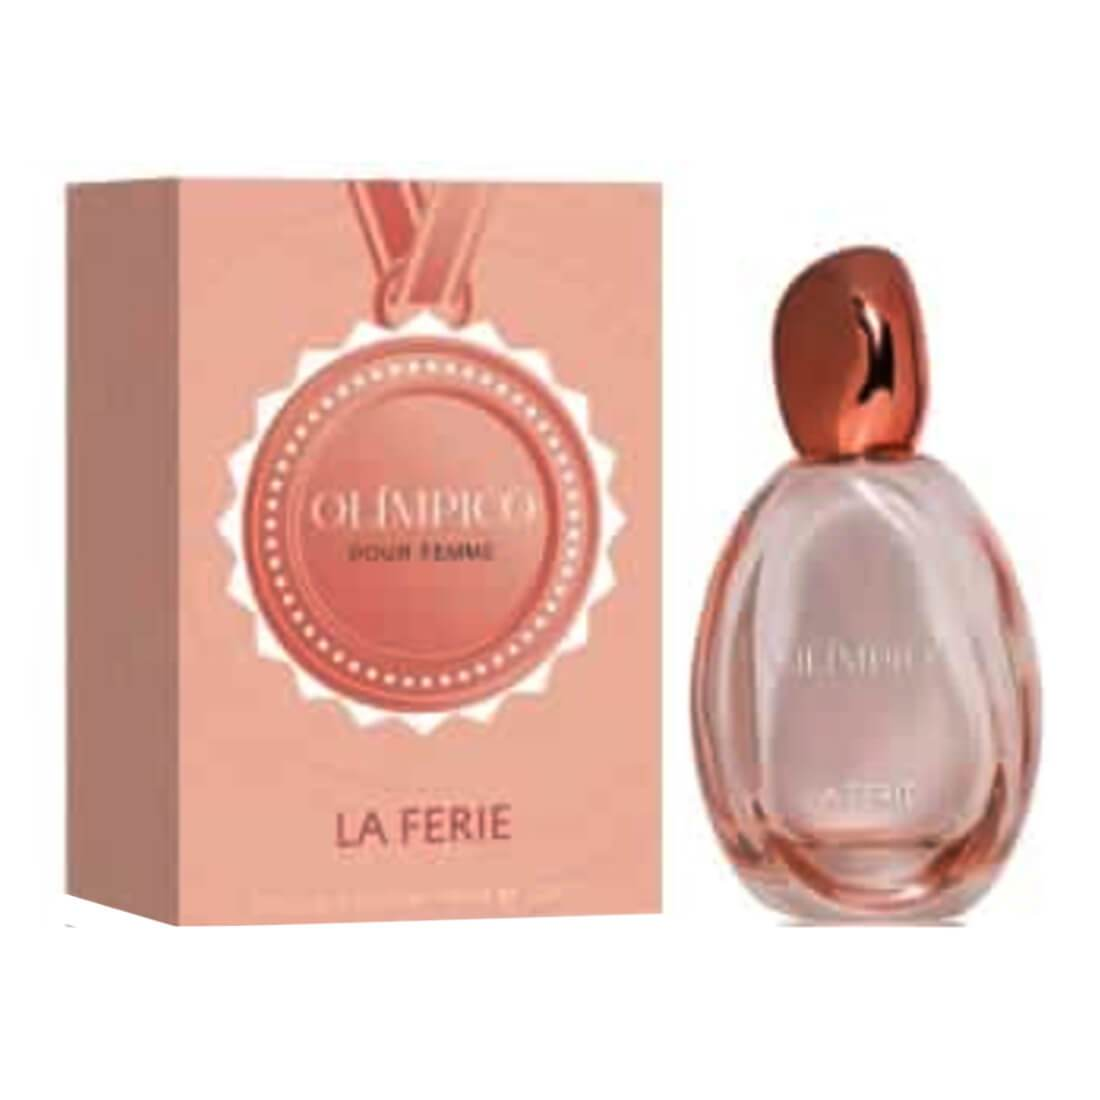 La Ferie Ollmpico Spray - 100ml